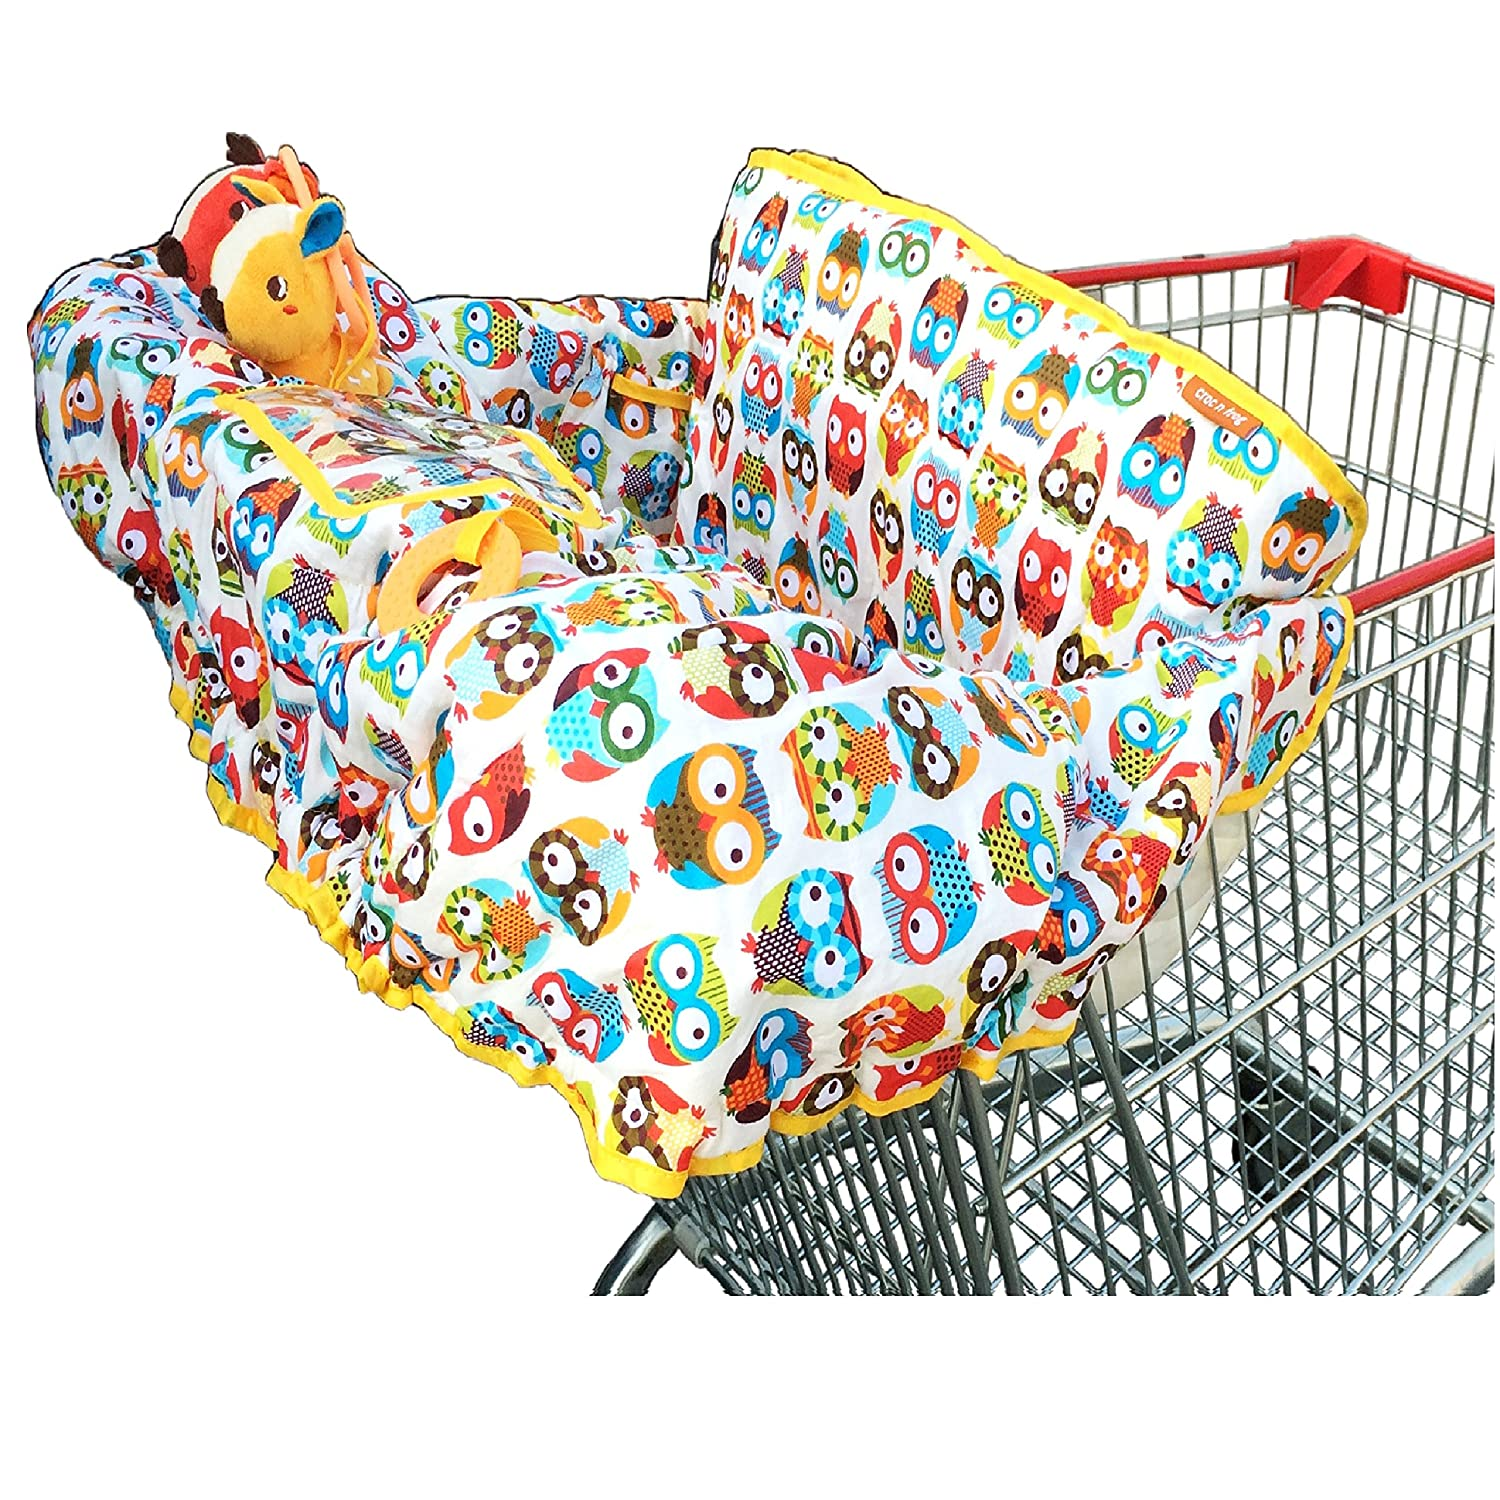 Amazon Crocnfrog 2 in 1 Cotton Shopping Cart Cover